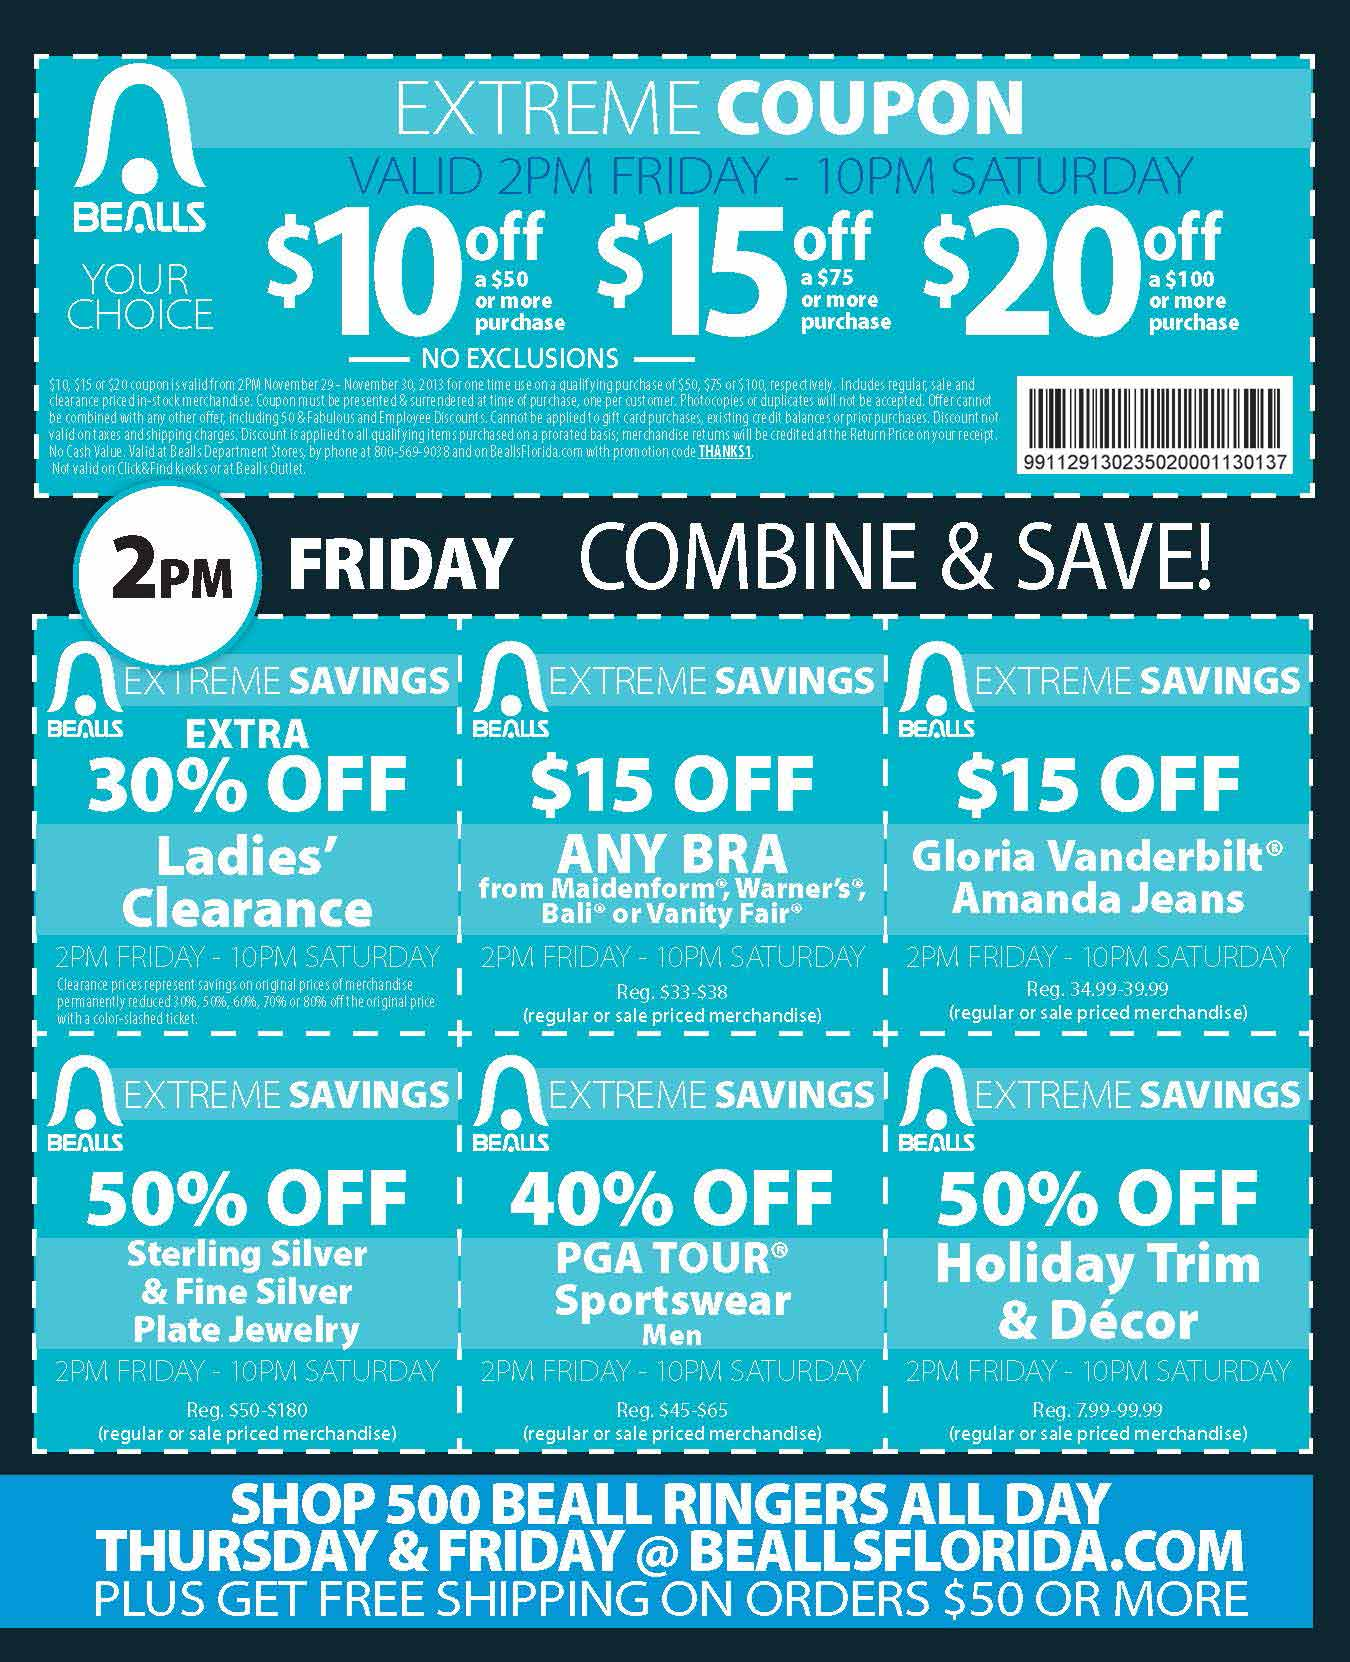 Bealls-Florida-Black-Friday-03